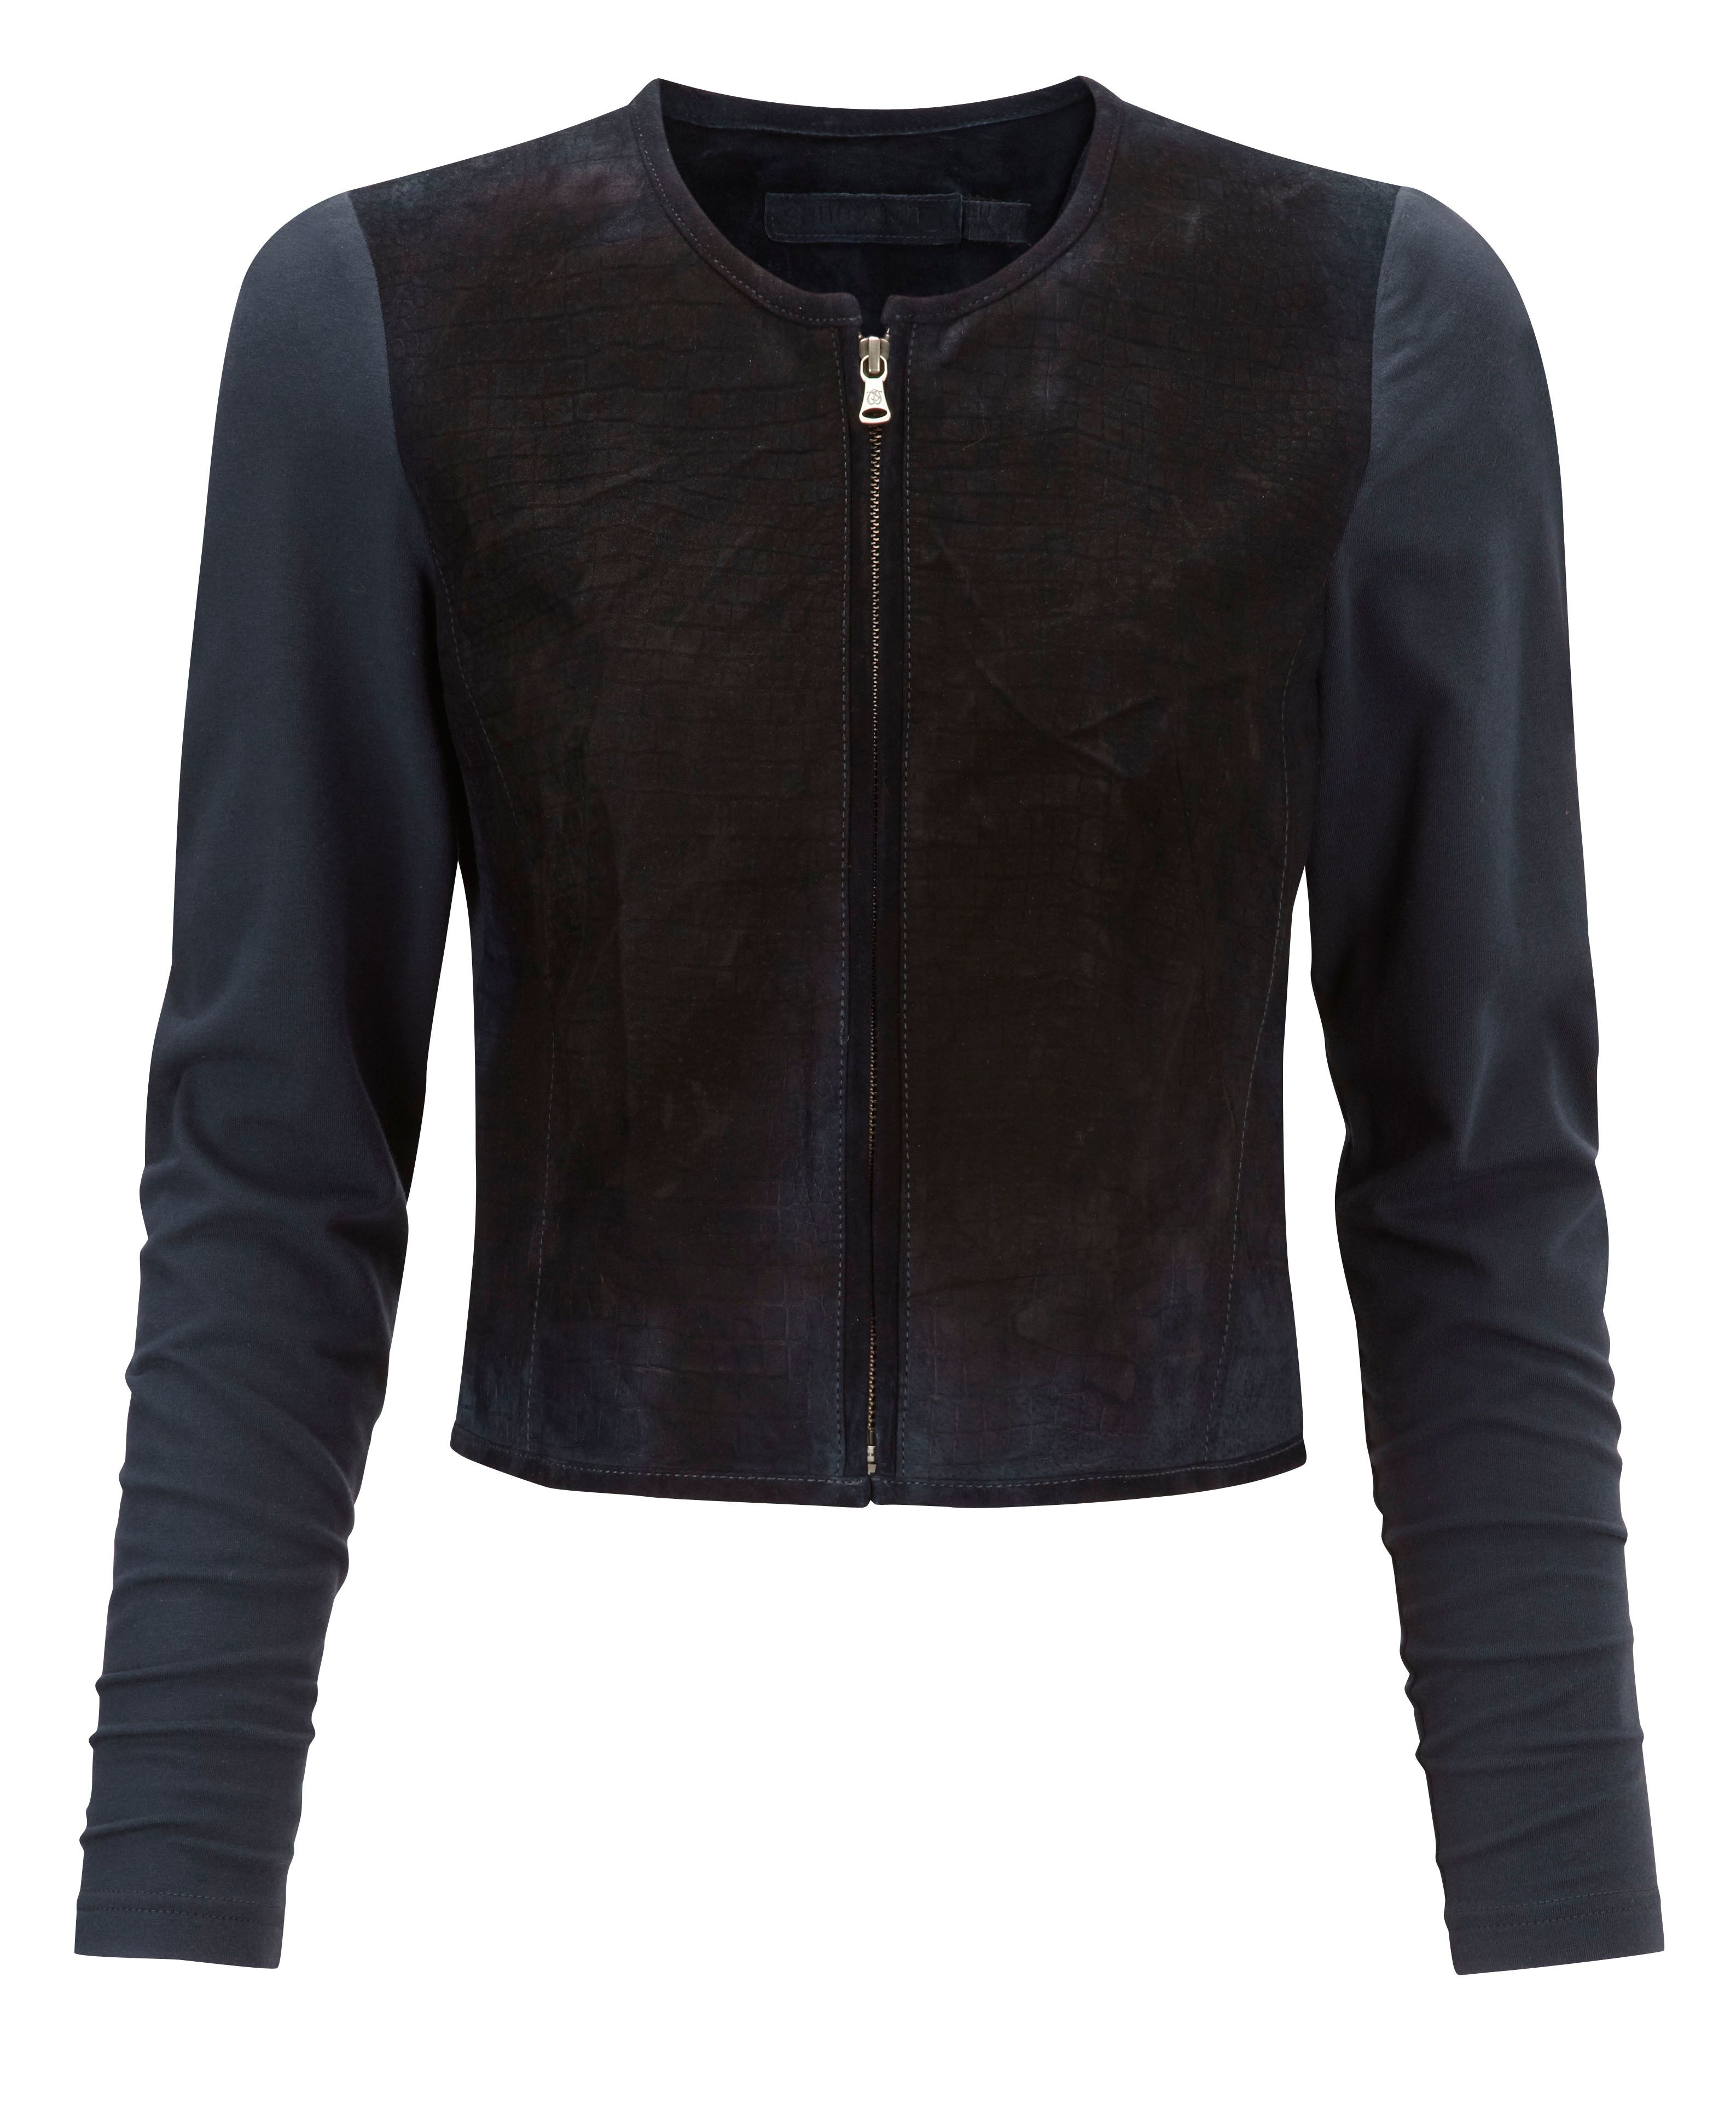 Leather and jersey jacket